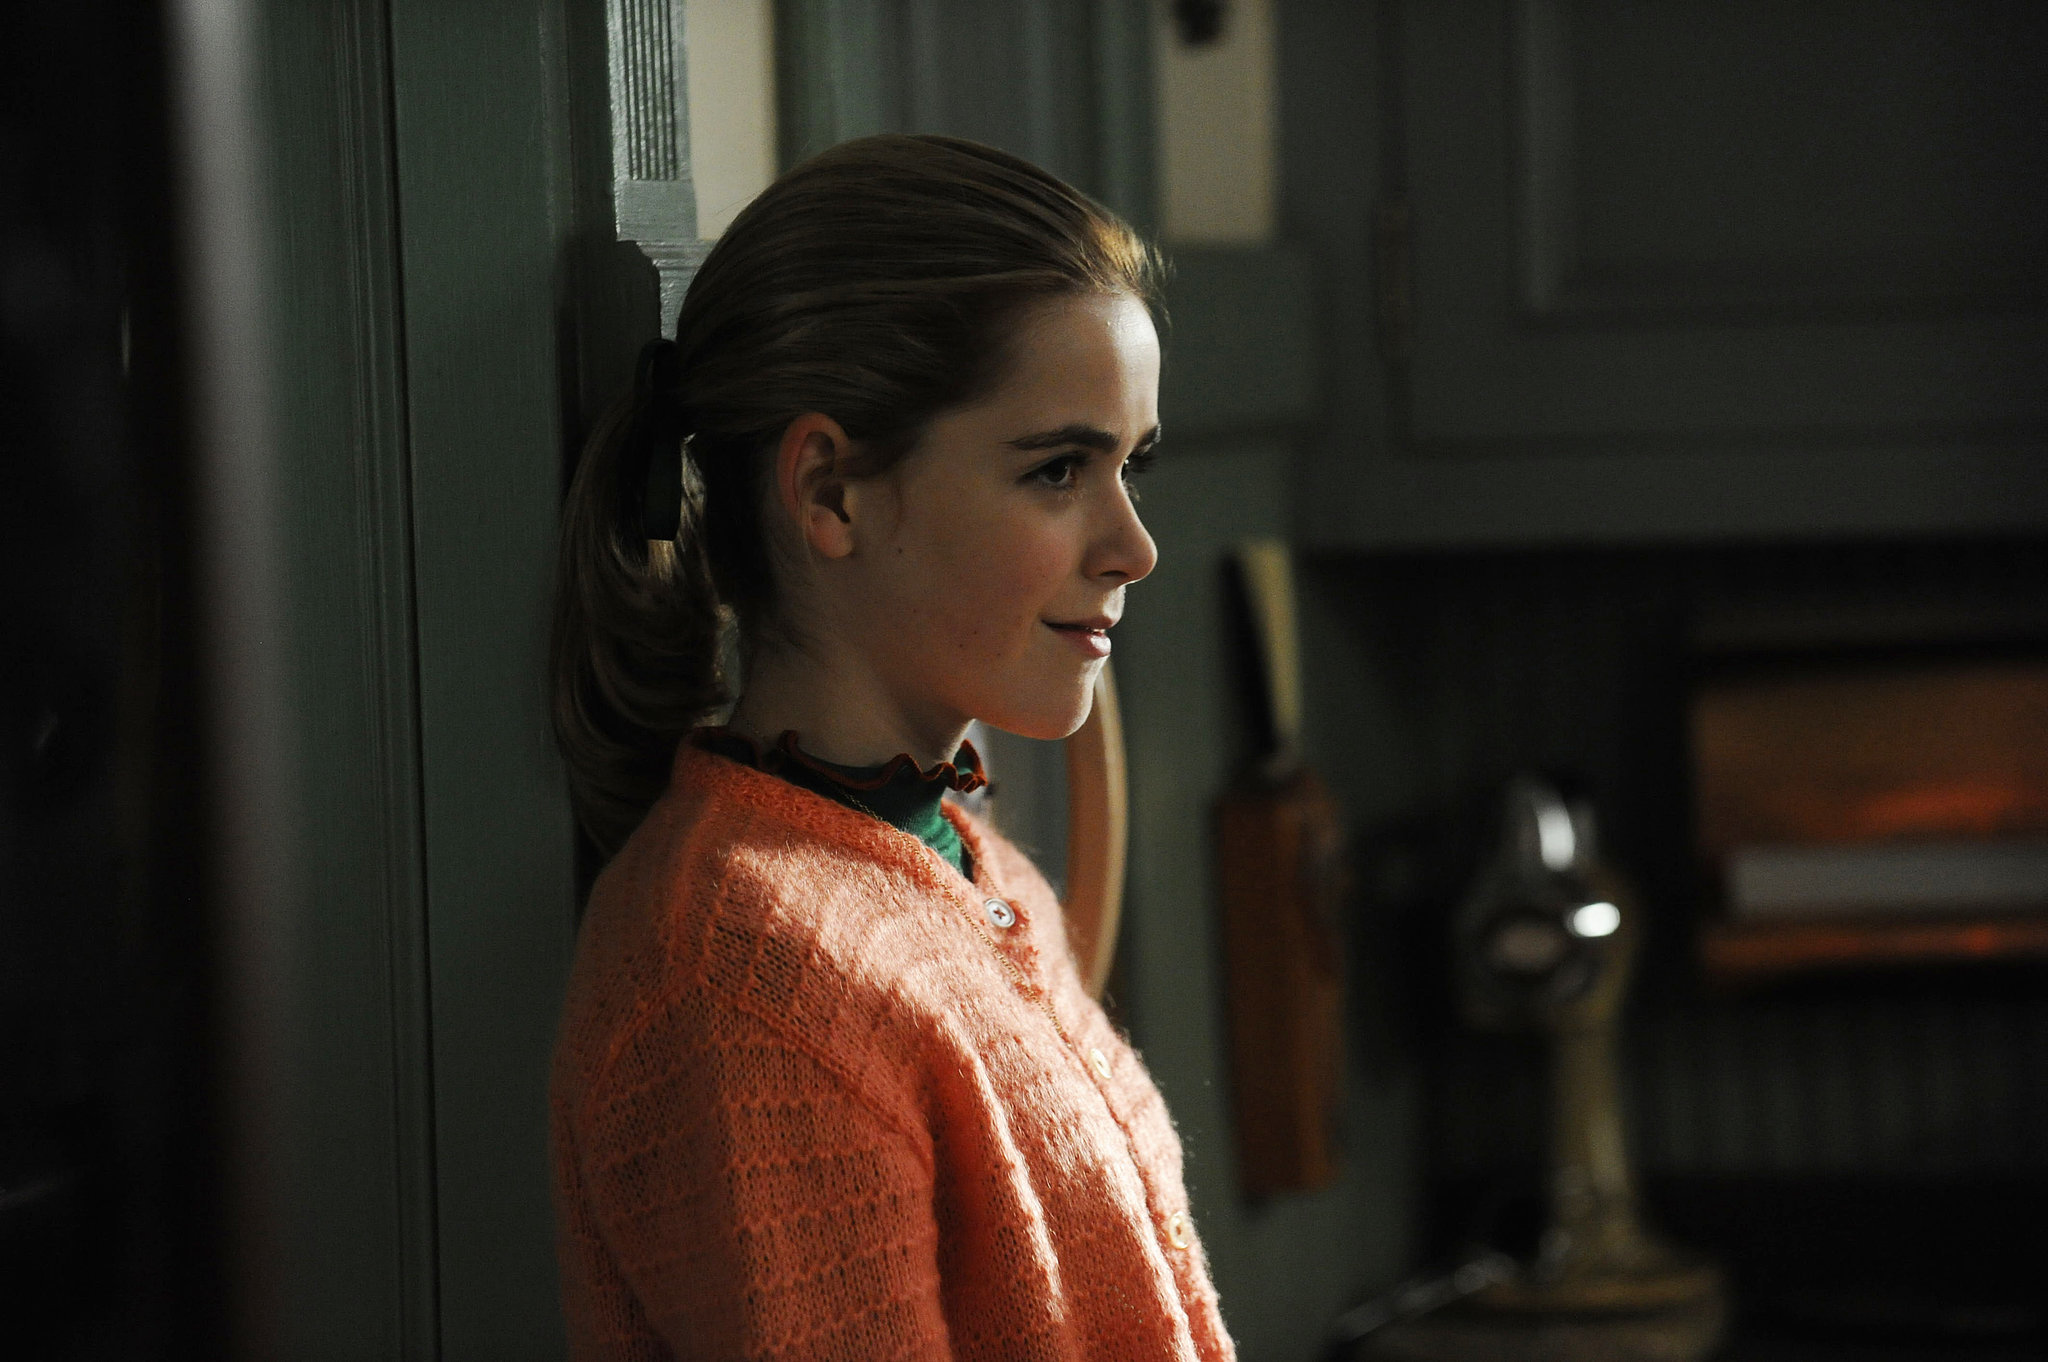 In season six, Sally is forced to live with her mom and her new husband, Henry, driving a further wedge between her and Don.